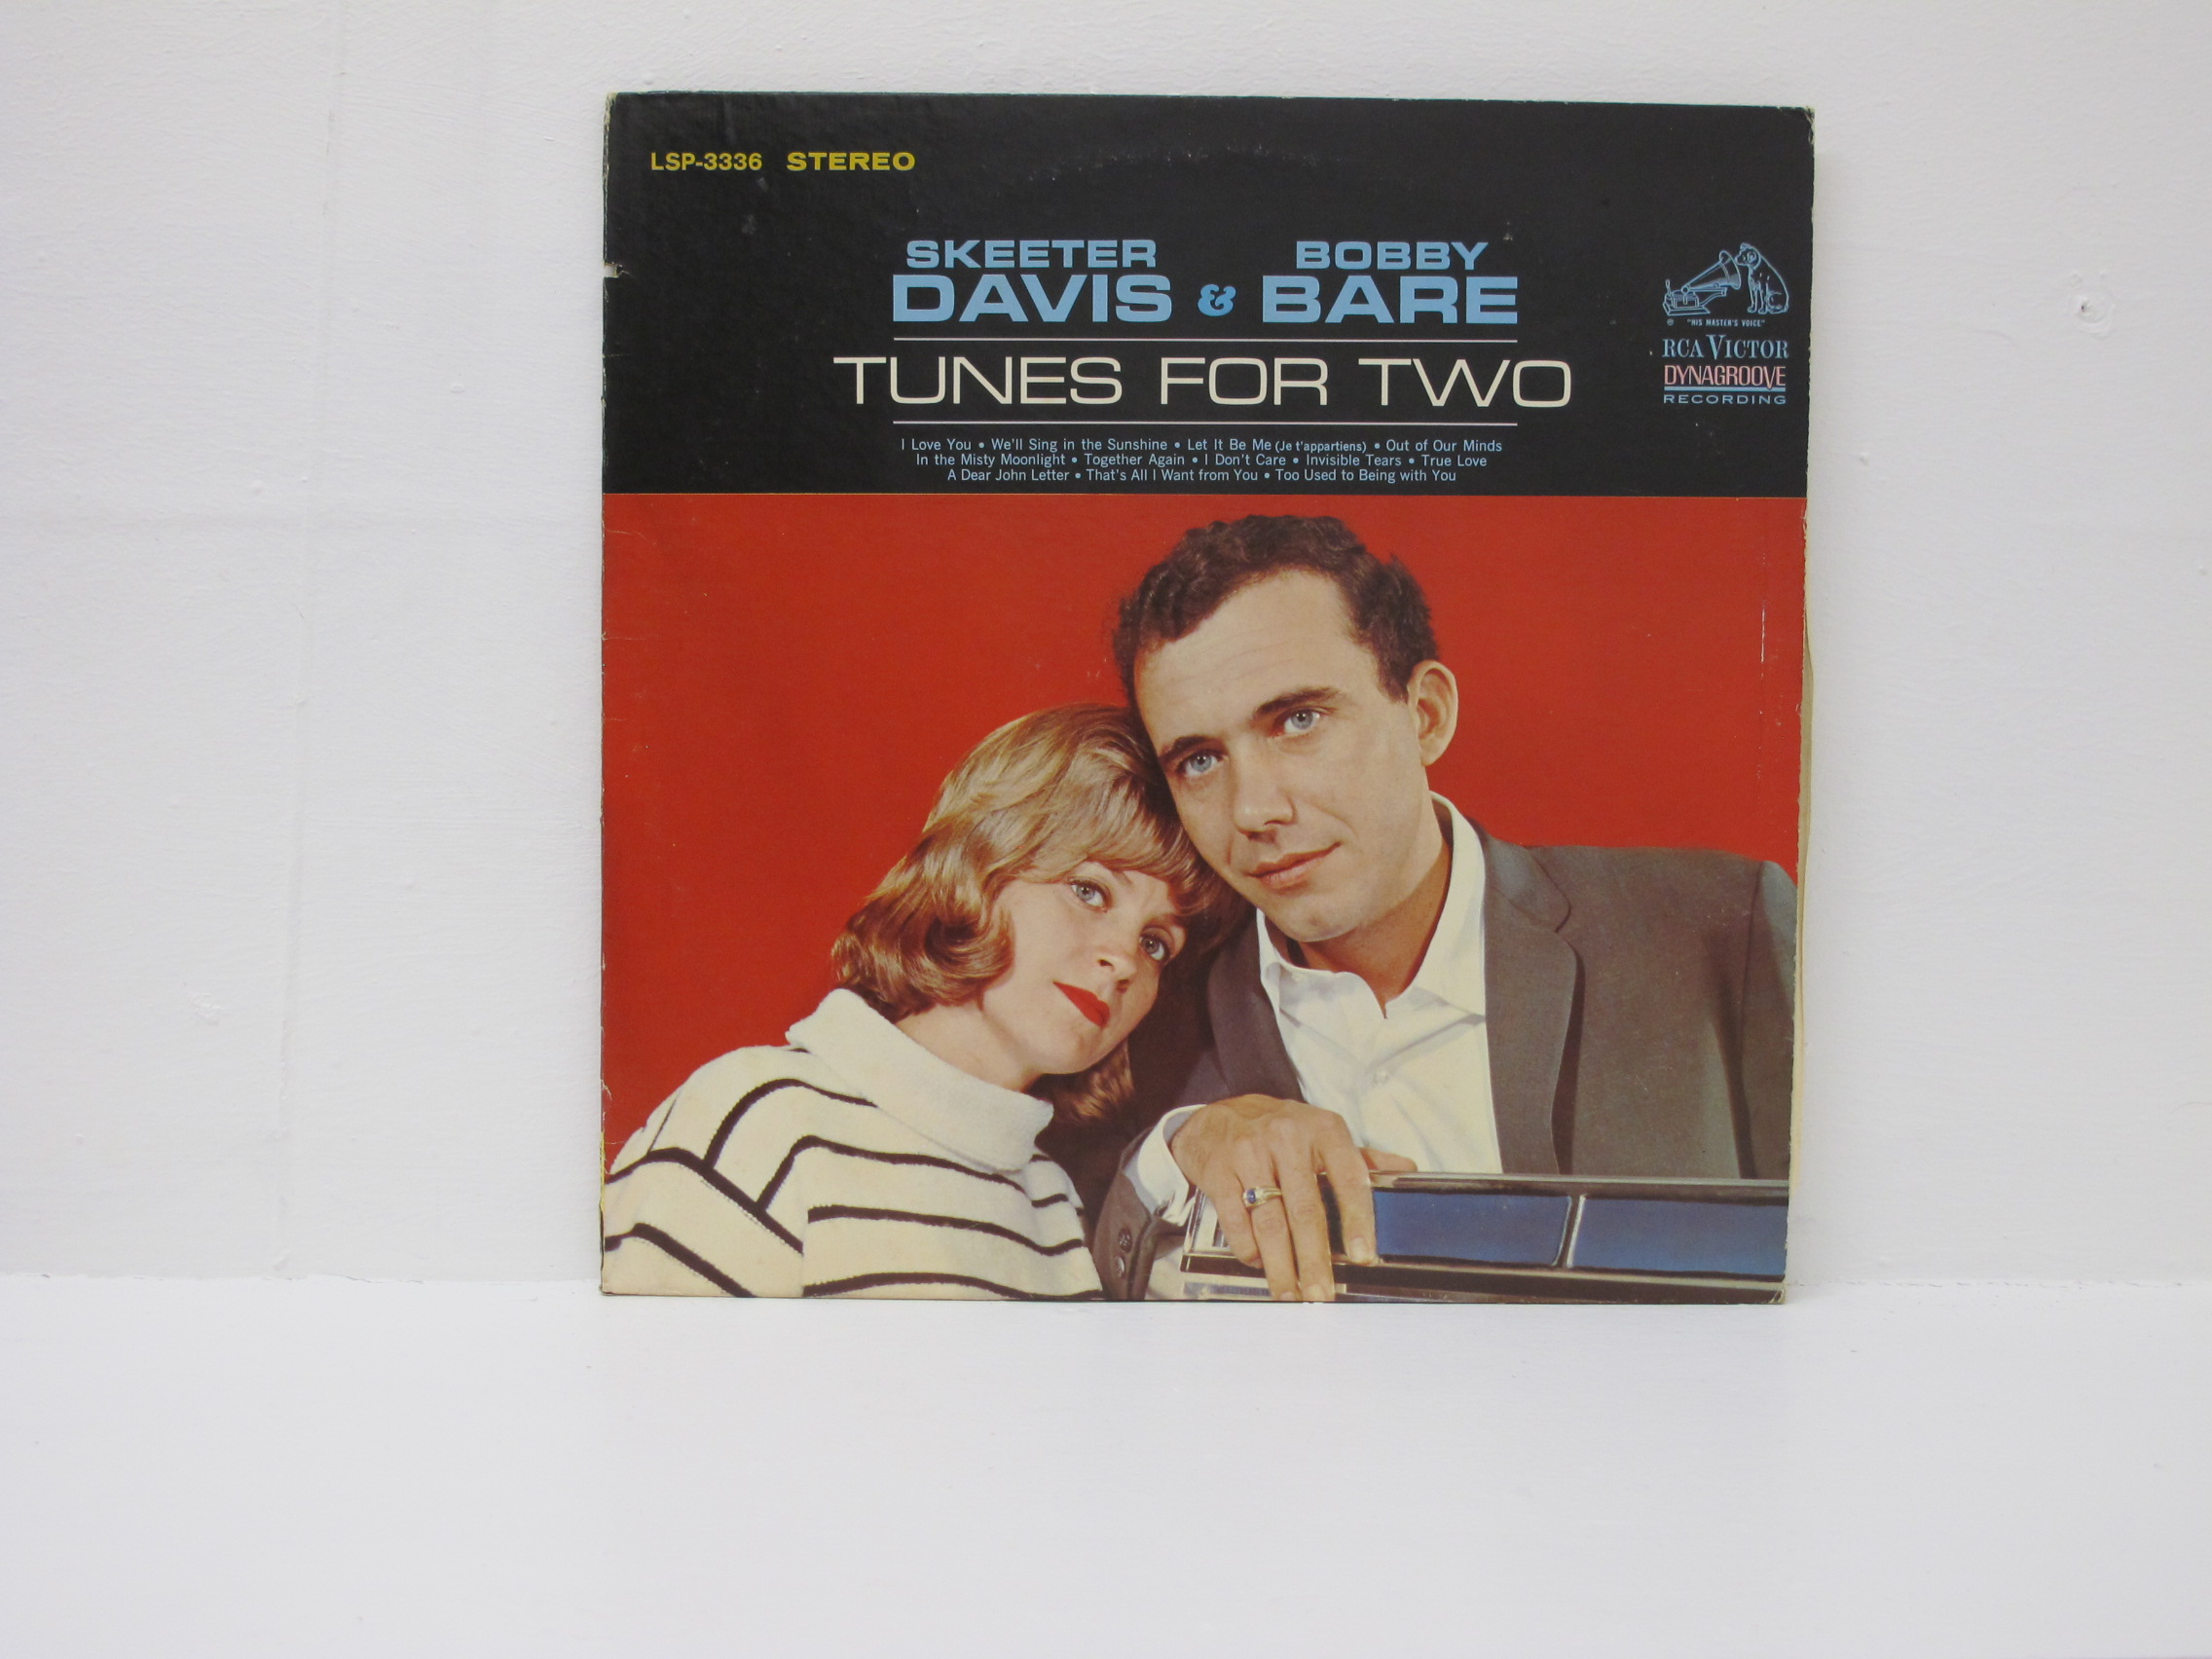 Skeeter Davis & Bobby Bare - Tunes For Two